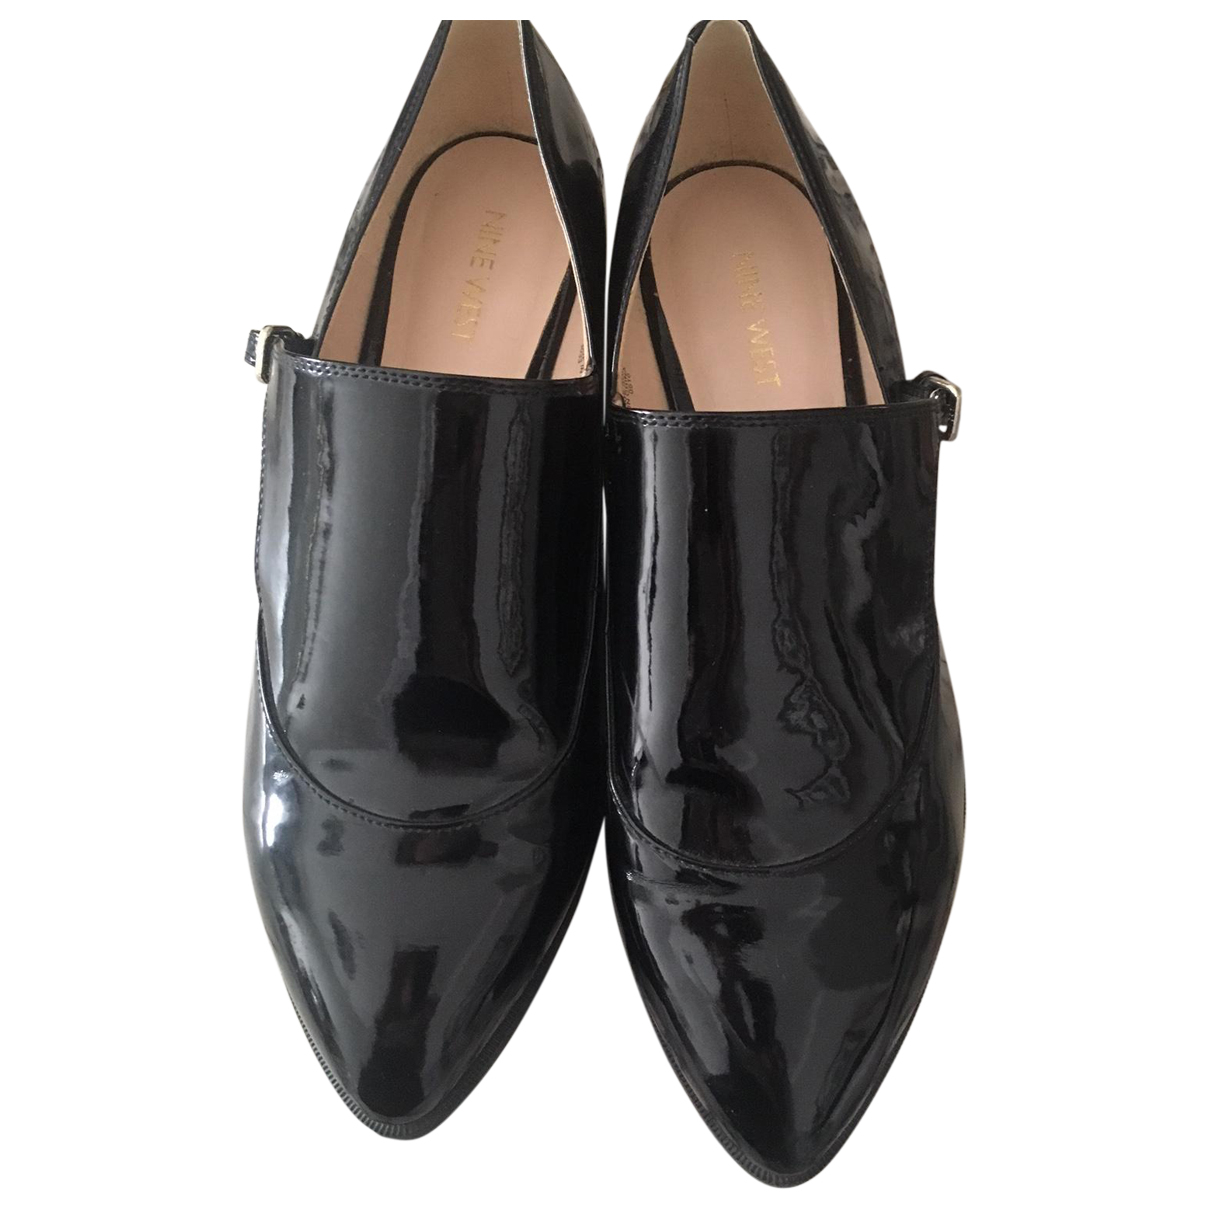 Nine West N Black Leather Flats for Women 10 UK